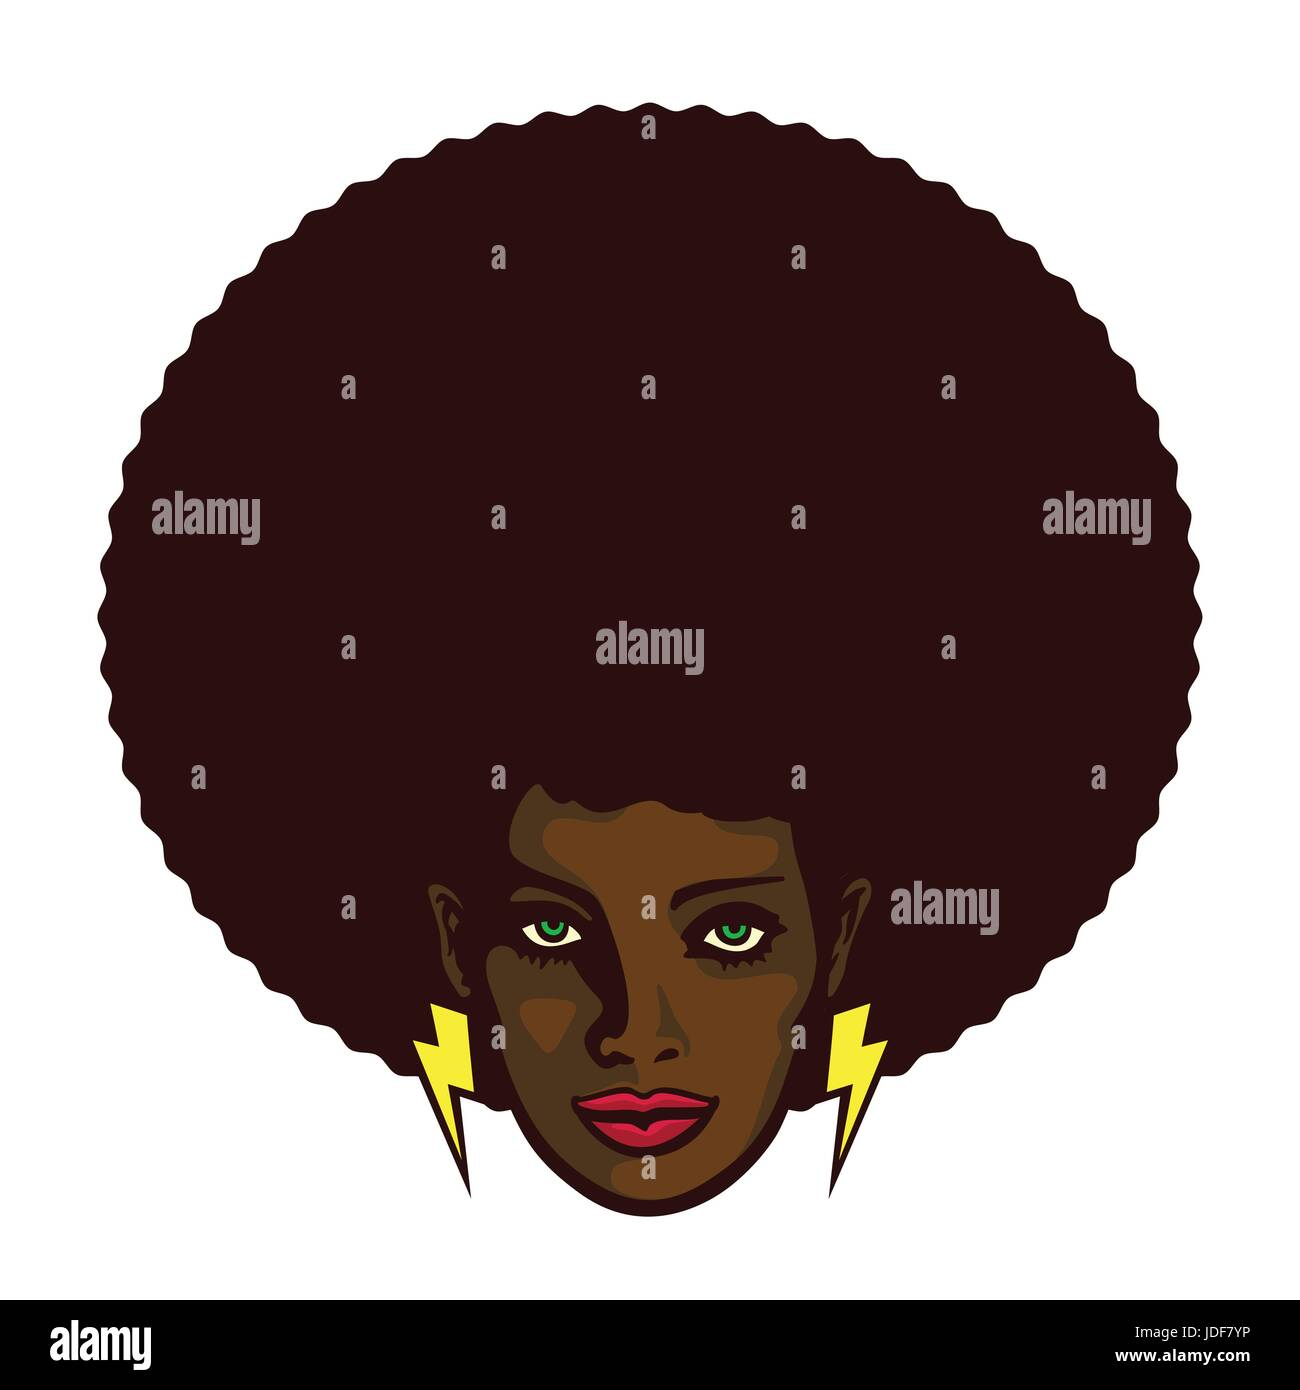 black woman with afro hair and lightning bolt earrings